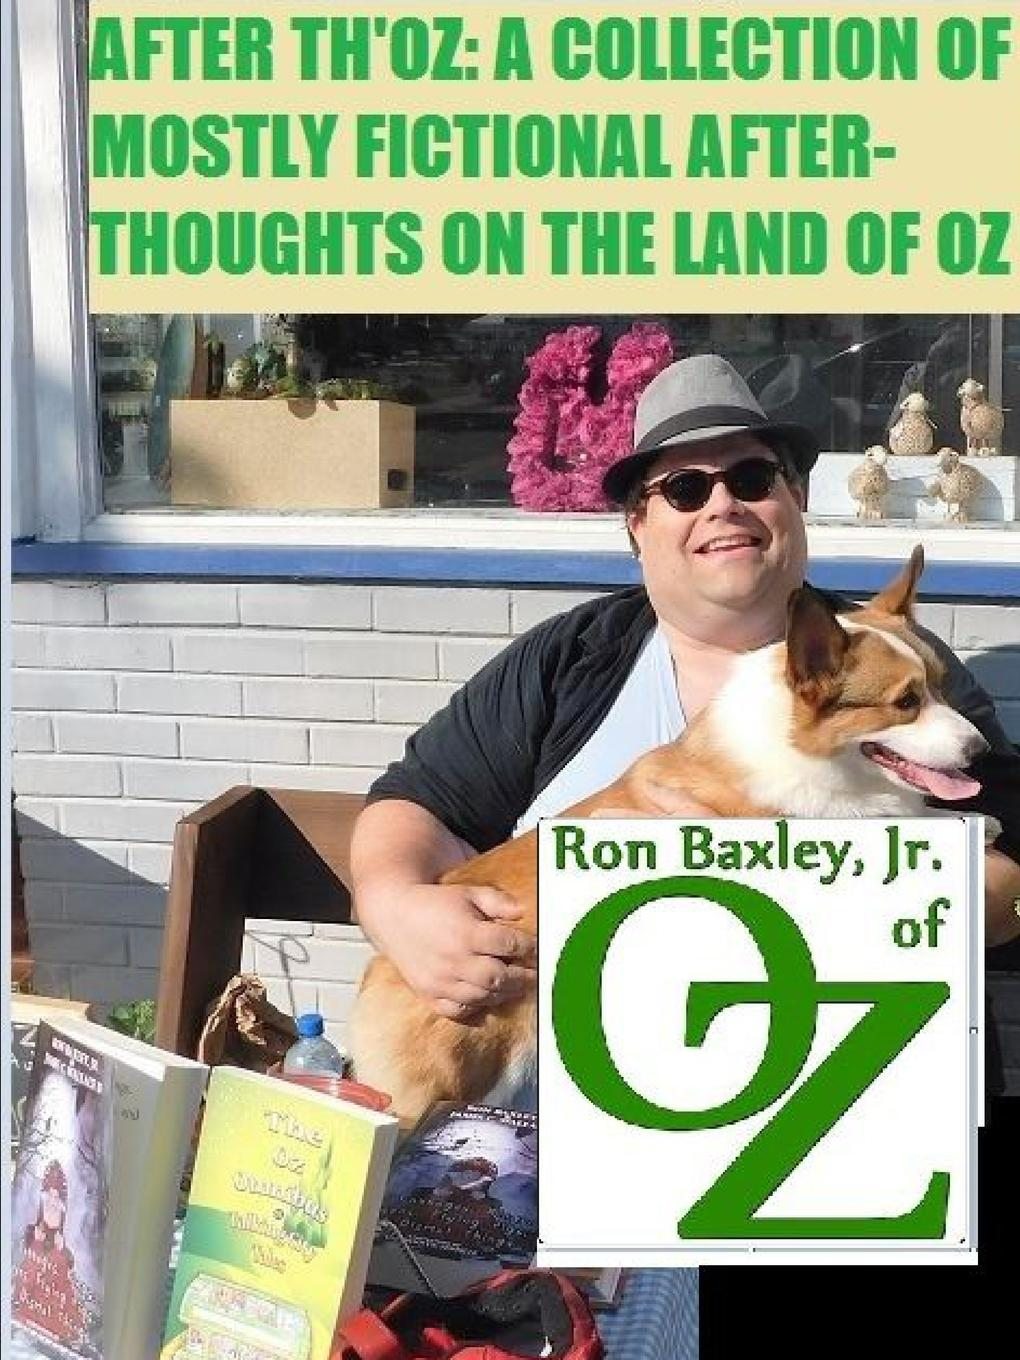 Jr. Ron Baxley AFTER TH.OZ. A COLLECTION OF MOSTLY FICTIONAL AFTER-THOUGHTS ON THE LAND OF OZ плоская фляжка brand new 1 oz jj